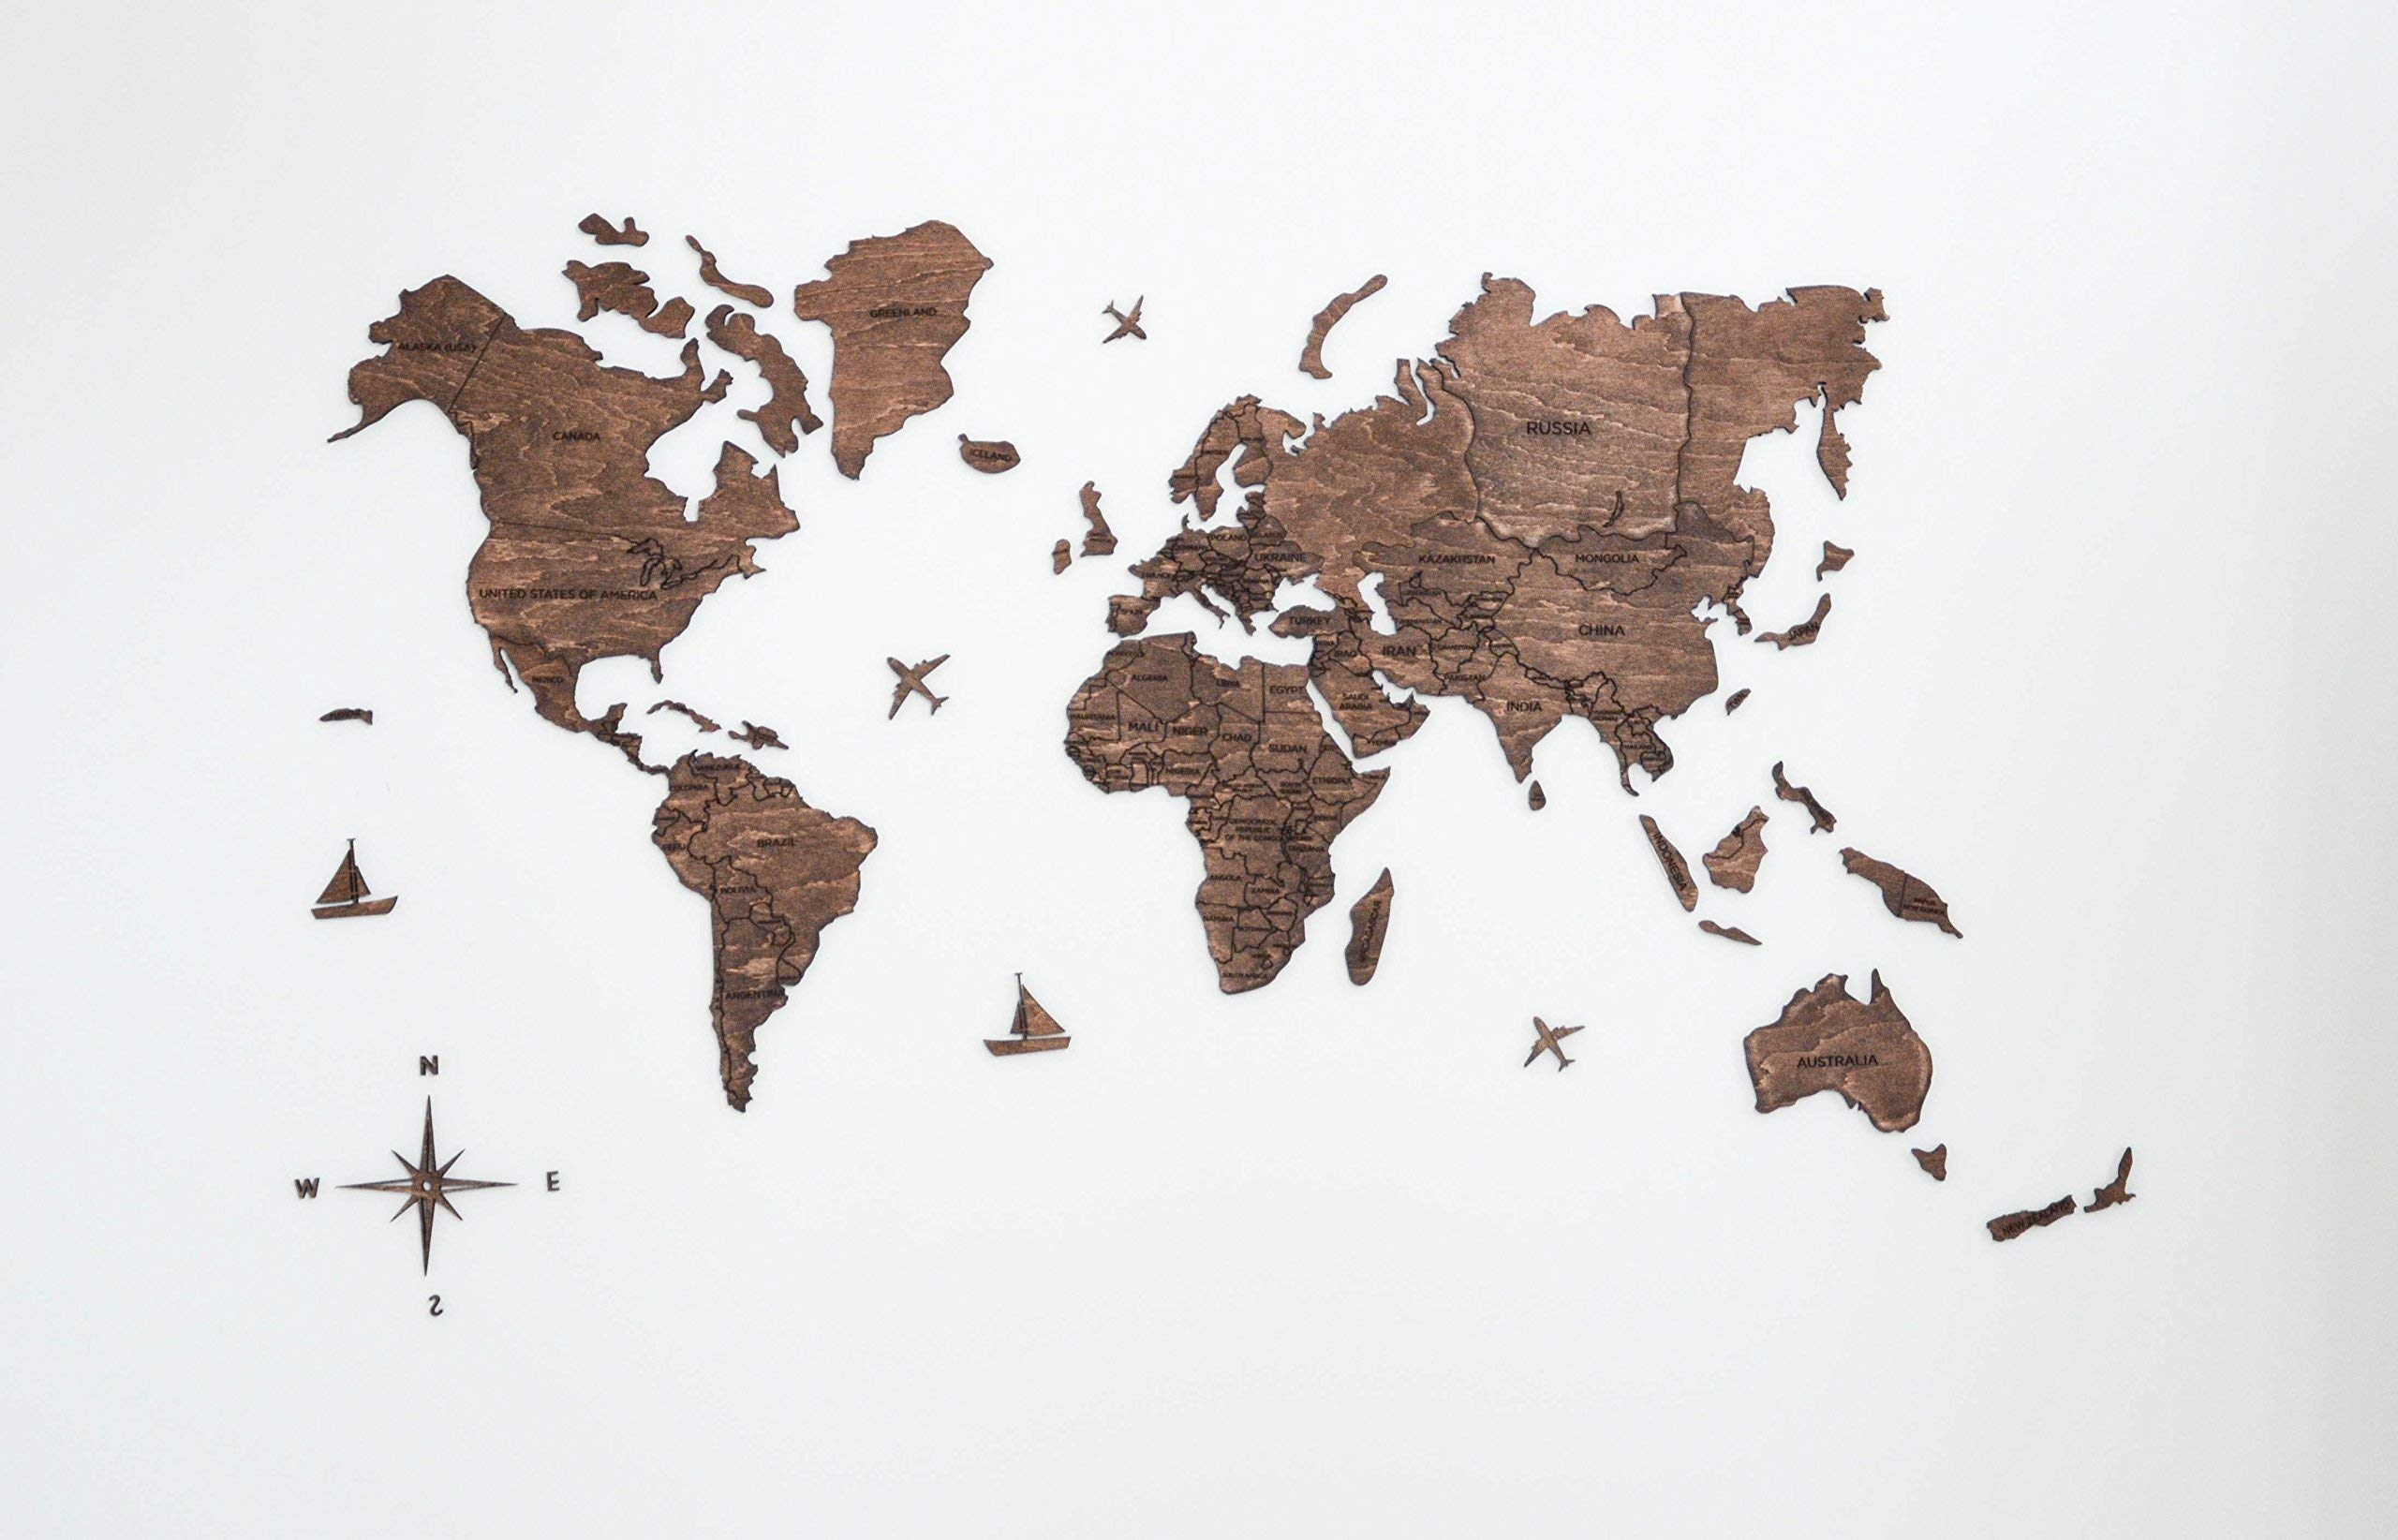 Large World Map of the World Travel map Wall world Cork Rustic Home decor Office decor Wall decor Dorm Living room Interior design Fathers Day Gift - By Enjoy The Wood 100x50cm, 150x90cm, 200x102cm